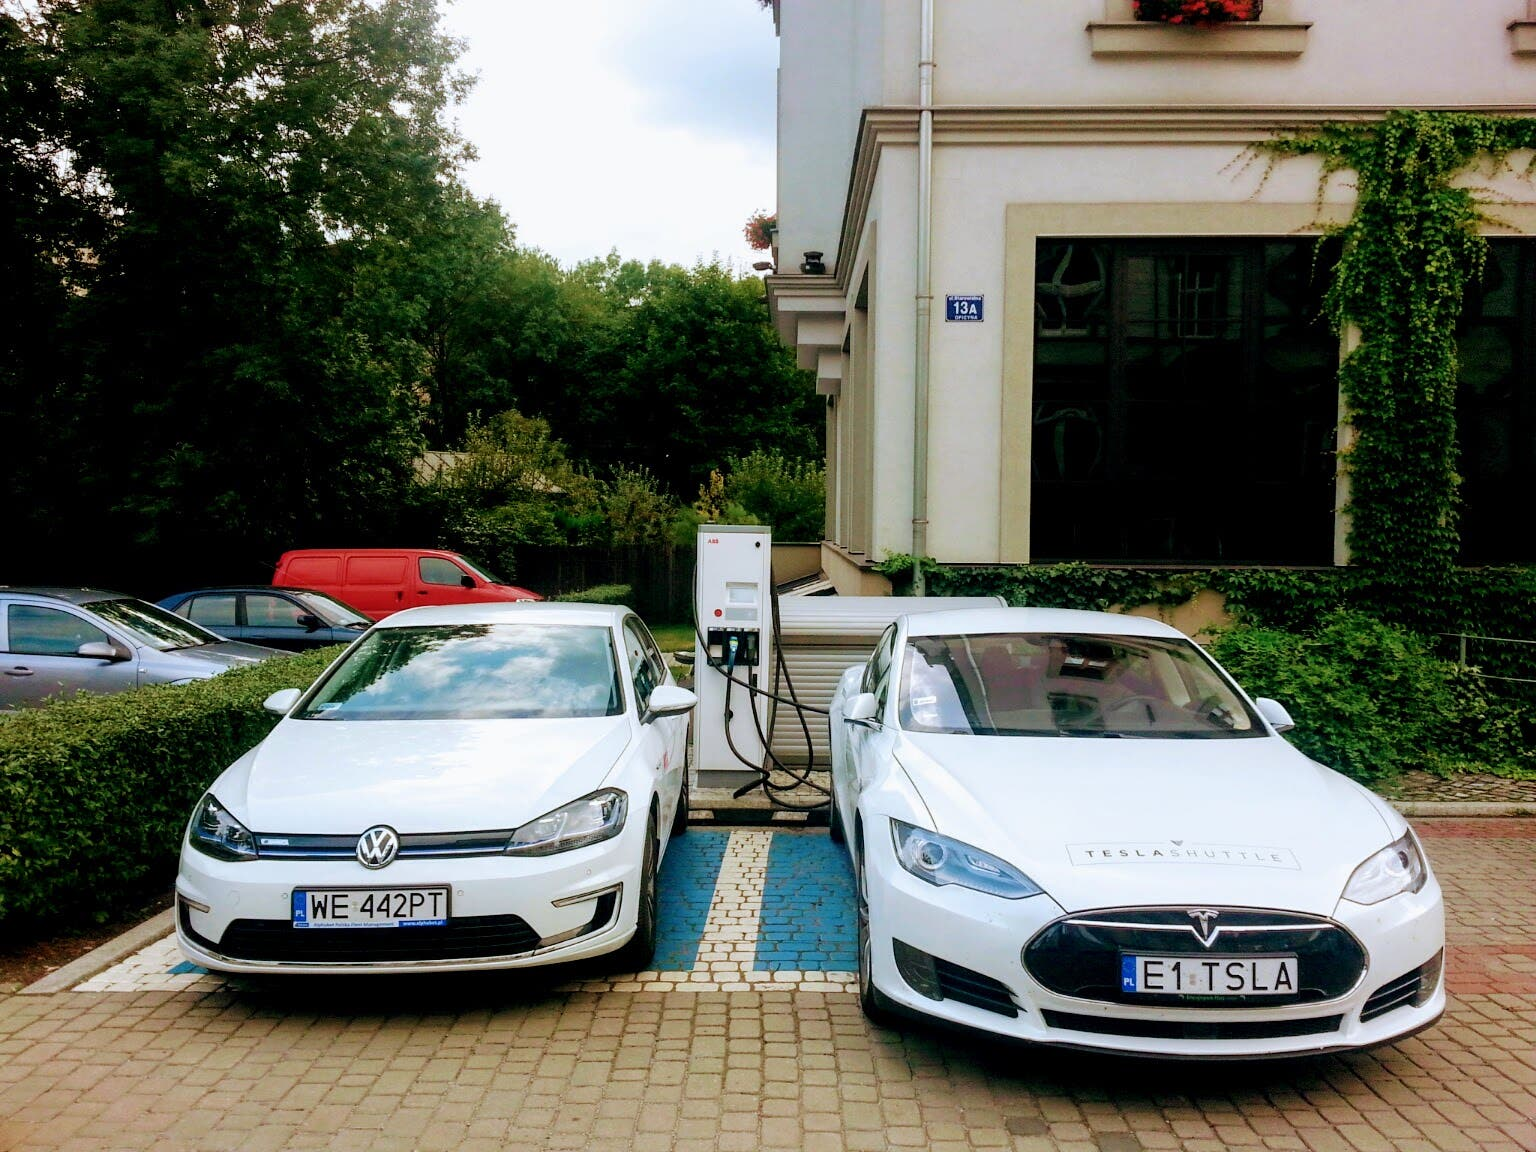 We Ve Had The First Tesla Model S In Our Shuttle Fleet For 3 Months Now Put 17 000 Kilometers 10 500 Miles On It One Of Several Reasons